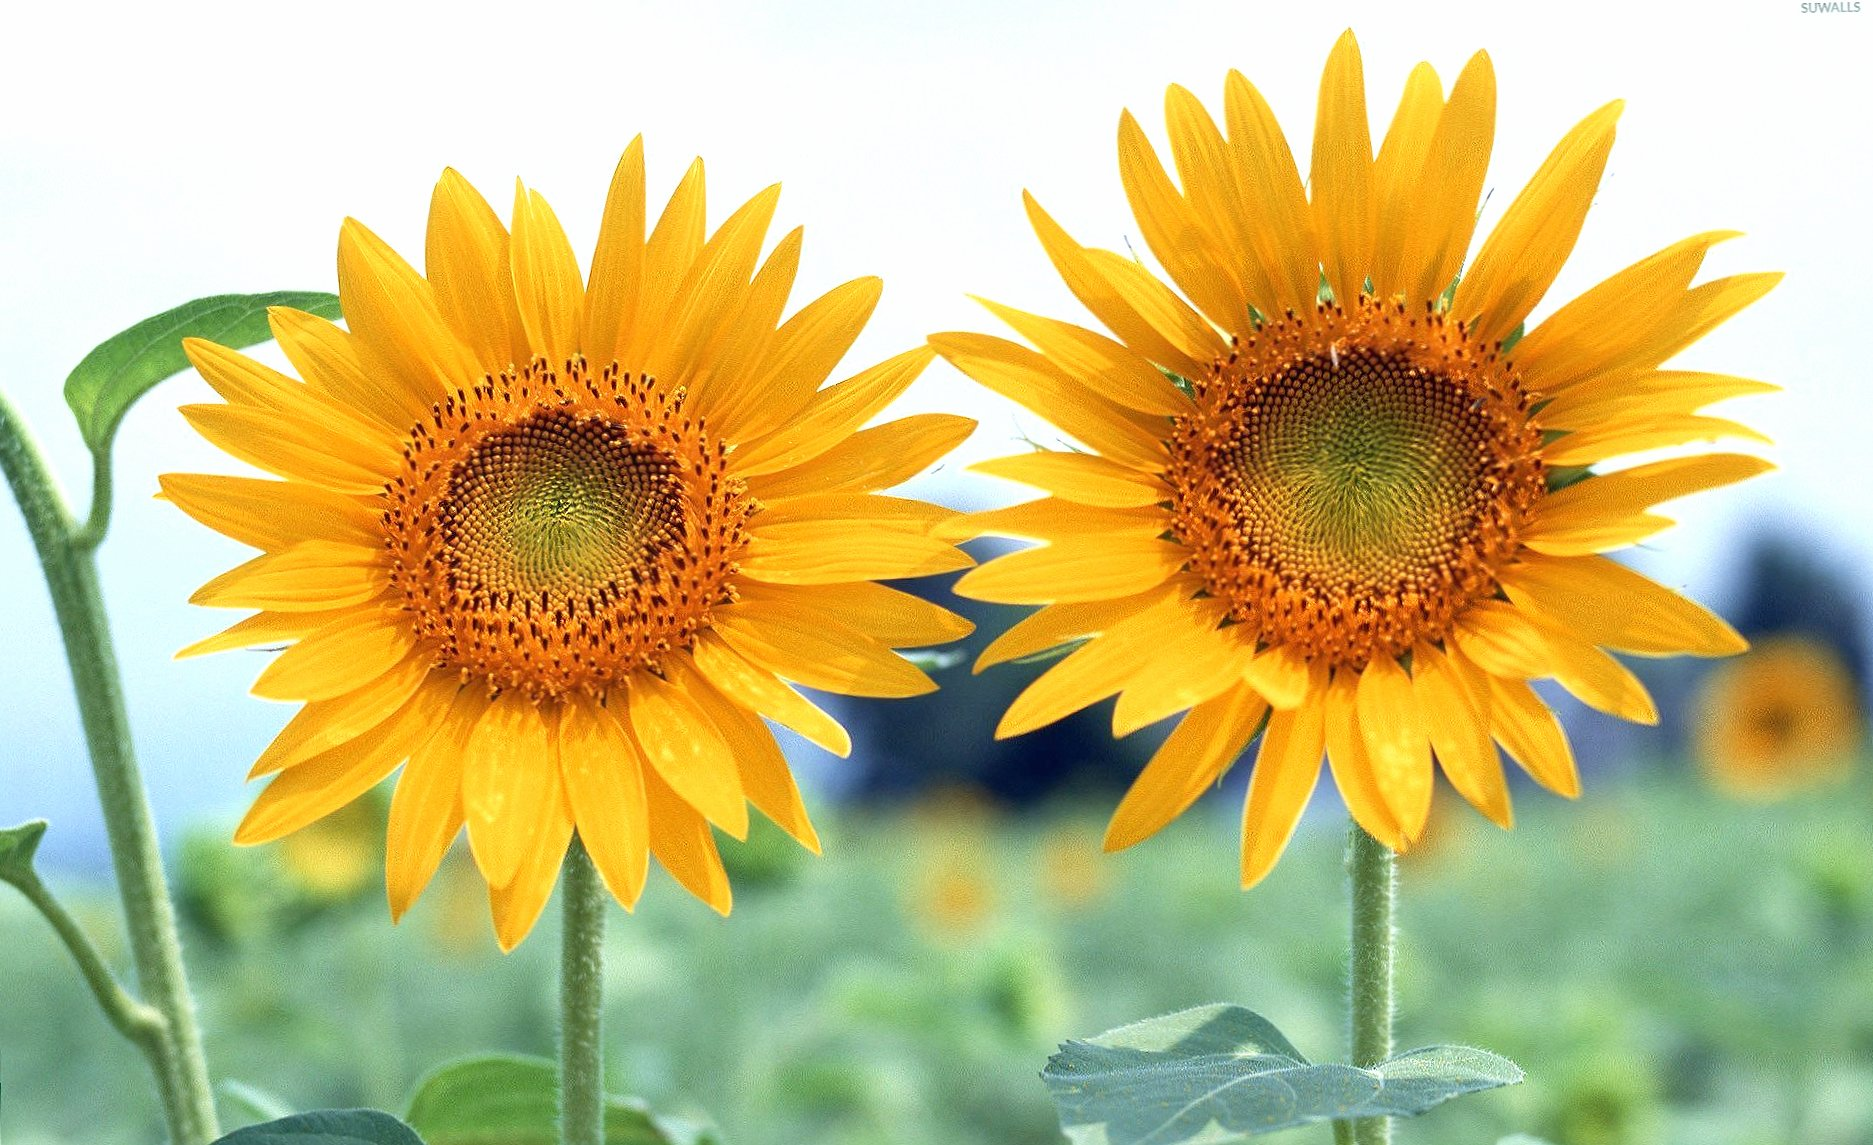 Two sunflowers wallpapers HD quality